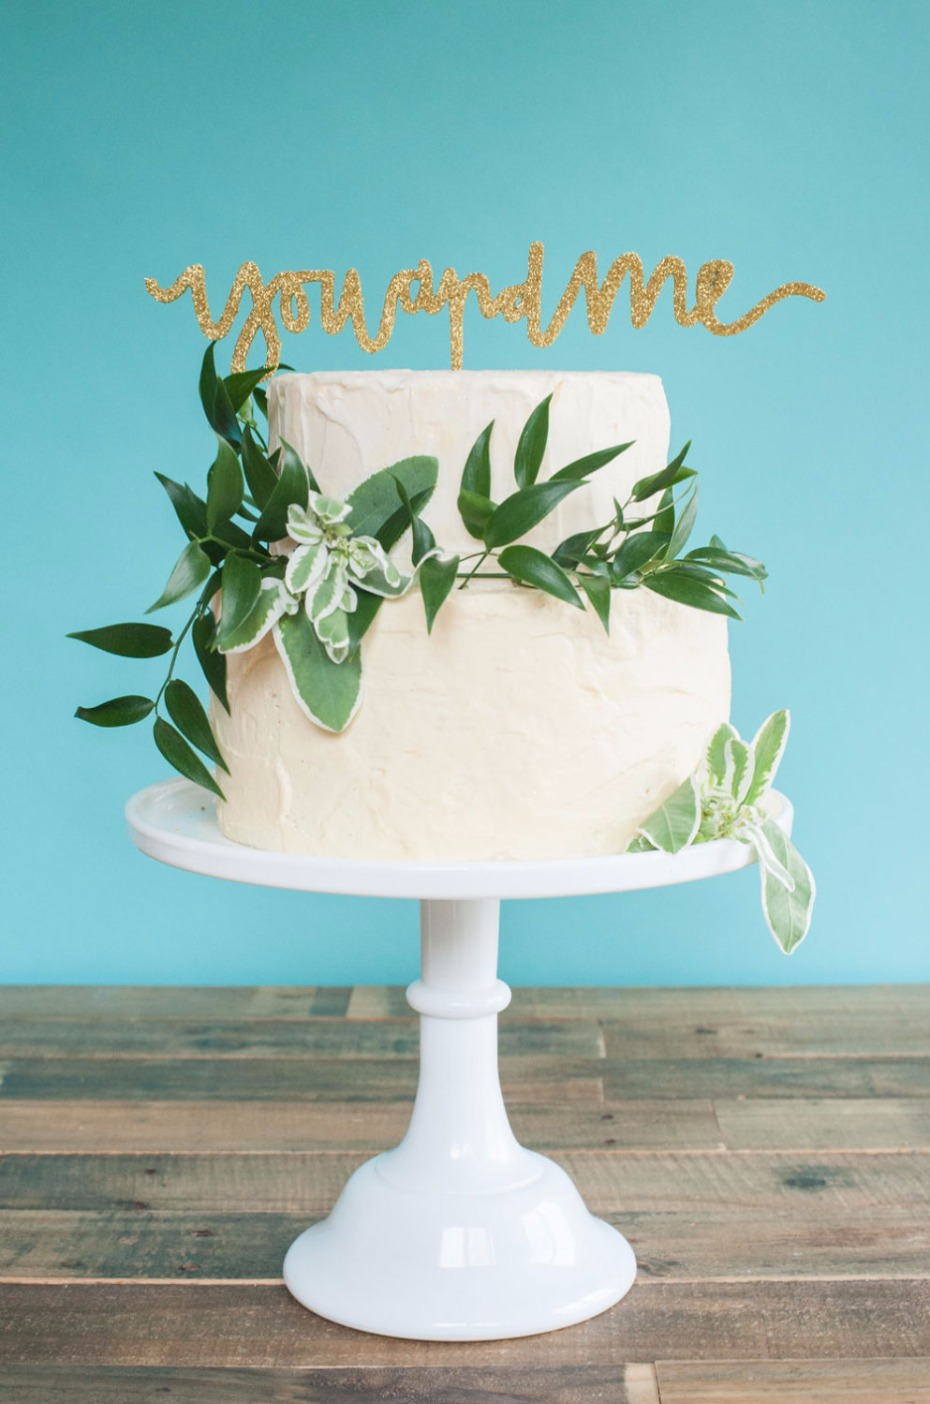 YOU AND ME wedding cake topper in gold glitter and other colors